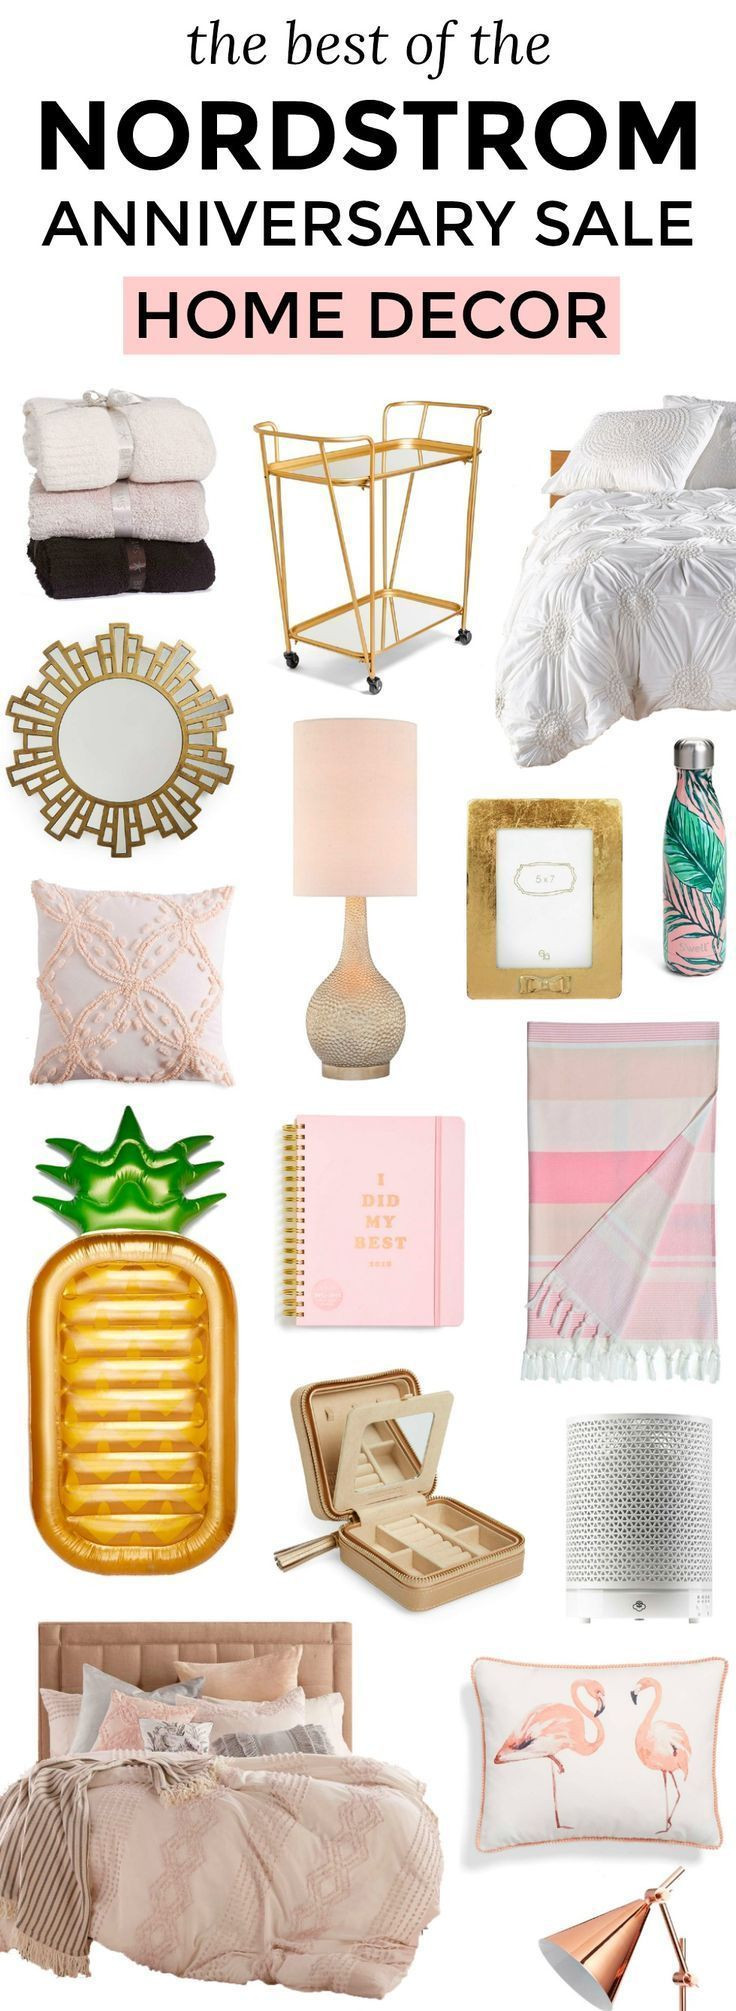 Affordable home decor finds that you will LOVE. P.S. All of these feminine home decor items are currently on sale in the Nordstrom Anniversary Sale for crazy low prices. To see the best home decor deals from the Nordstrom Anniversary Sale, click through this pin from Orlando, Florida lifestyle blogger Ashley Brooke Nicholas! | cute home decor, home decor ideas, pink gold and white home decor, cute bedding, gold bar cart, pink and green palm trees, flamingos, gold mirrors